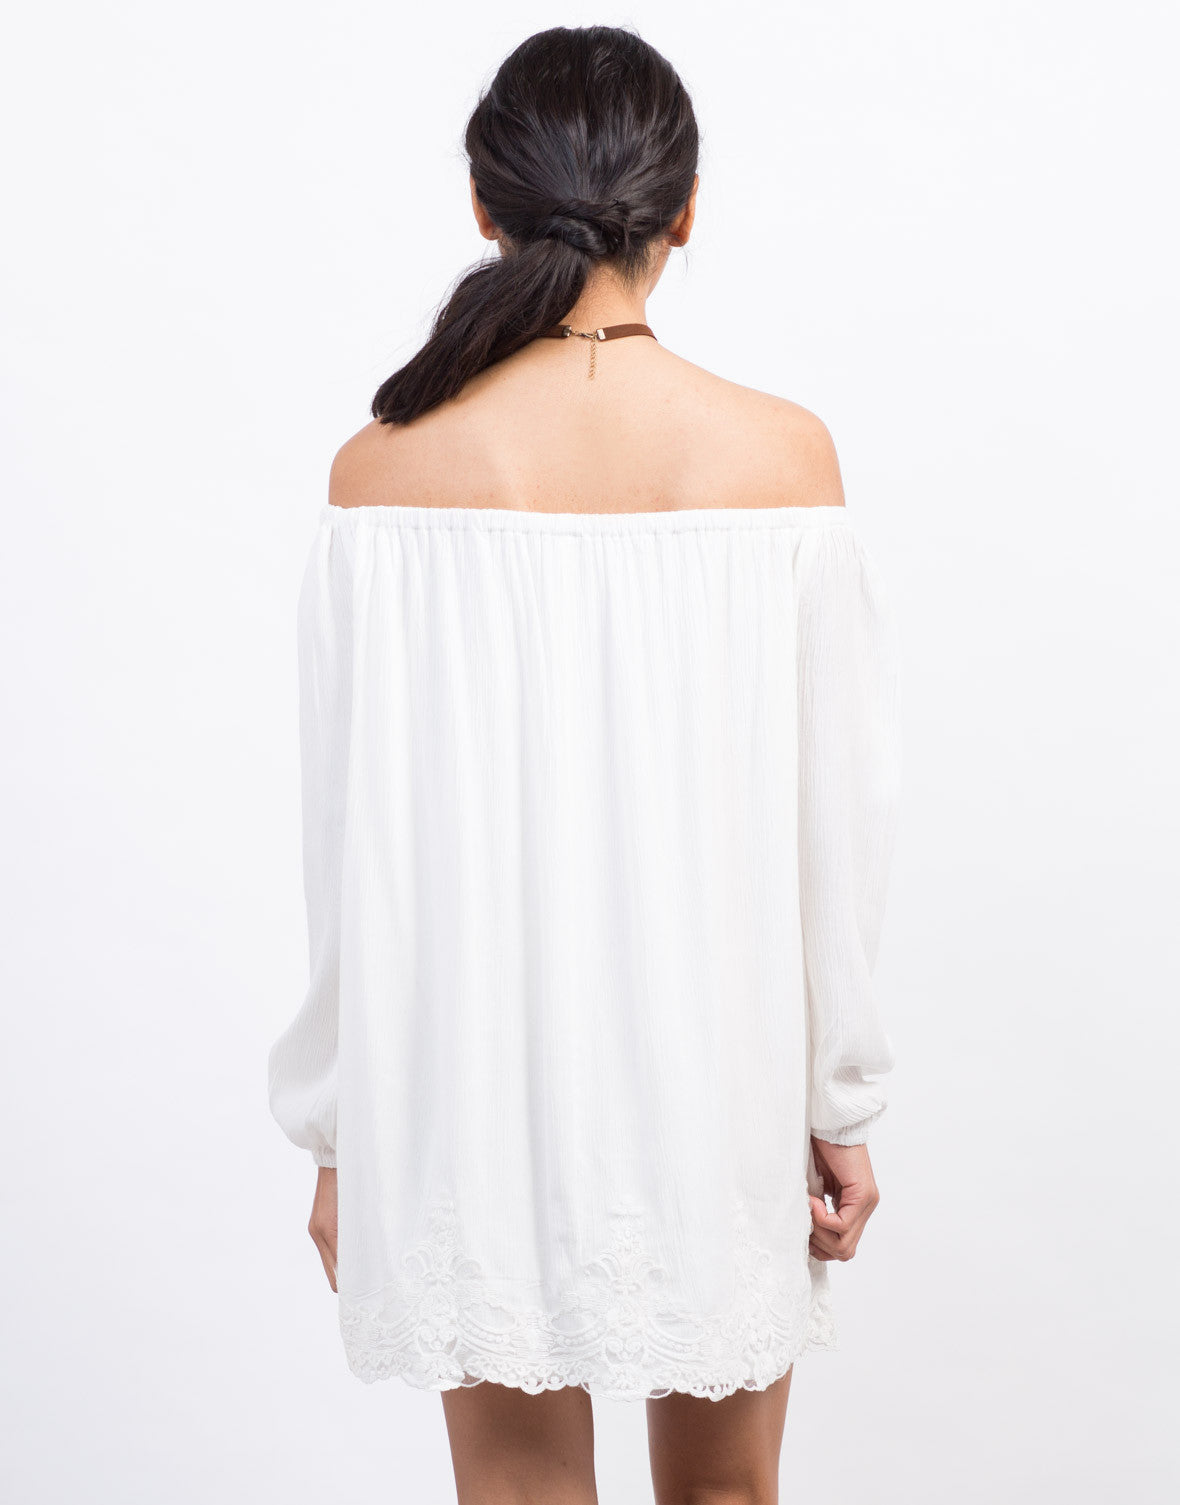 Back View of Off-The-Shoulder Lace Trim Dress